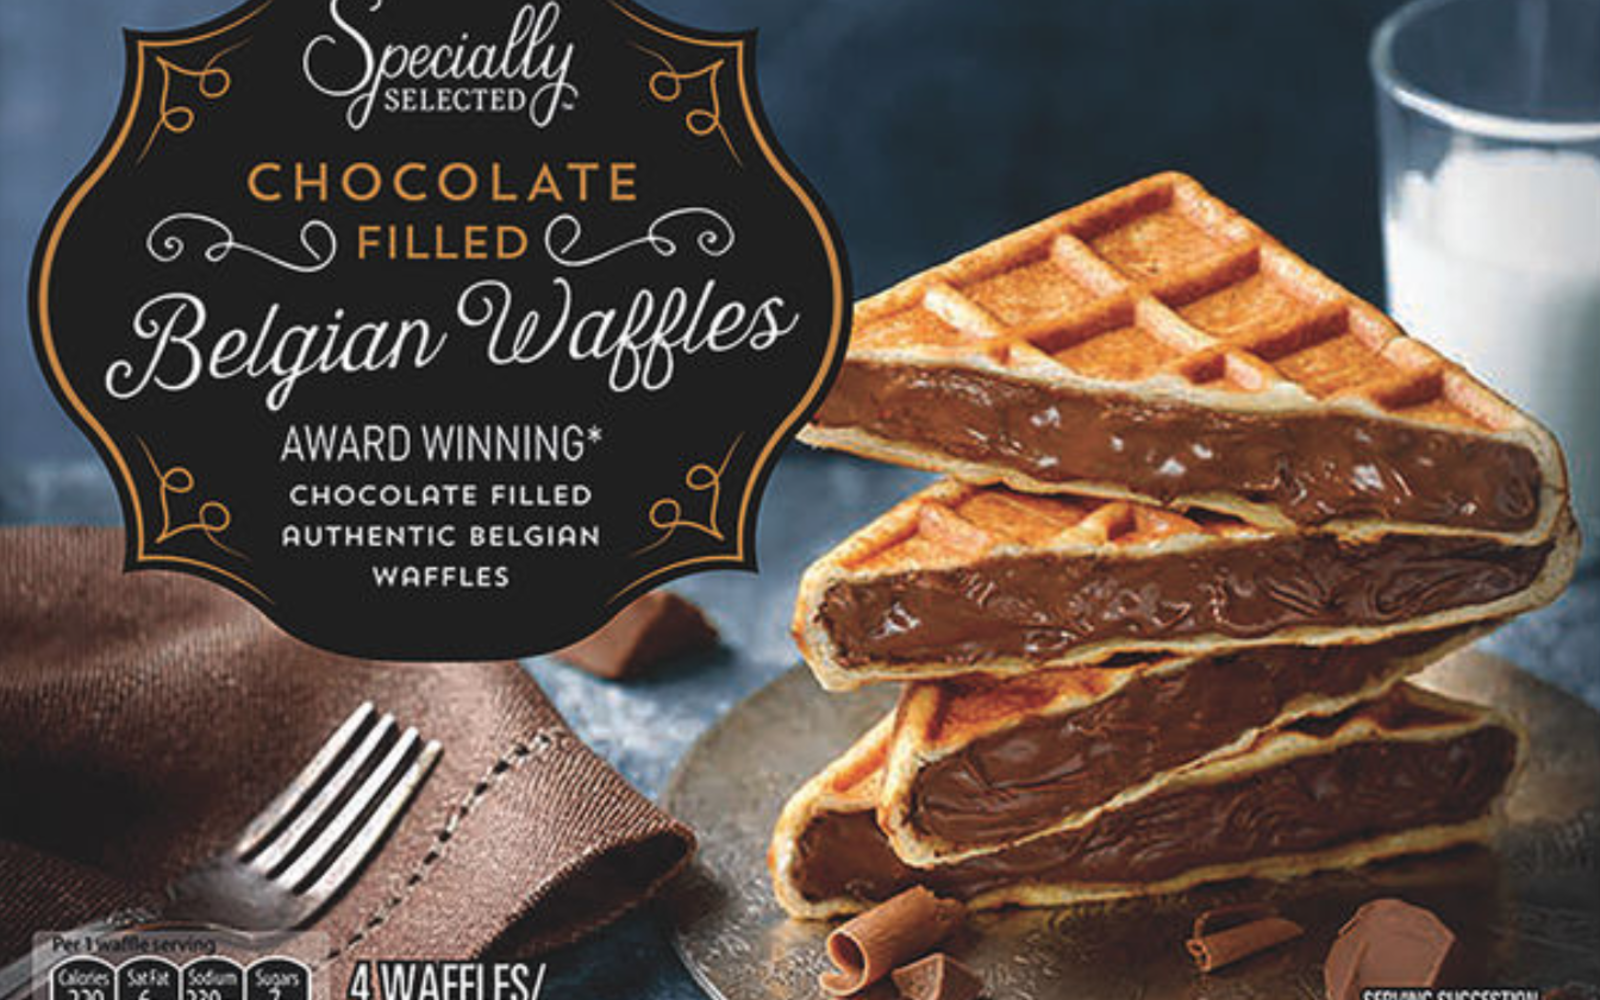 Aldi's Chocolate-filled Belgian Waffles Are Over-the-top in the Best Way Possible